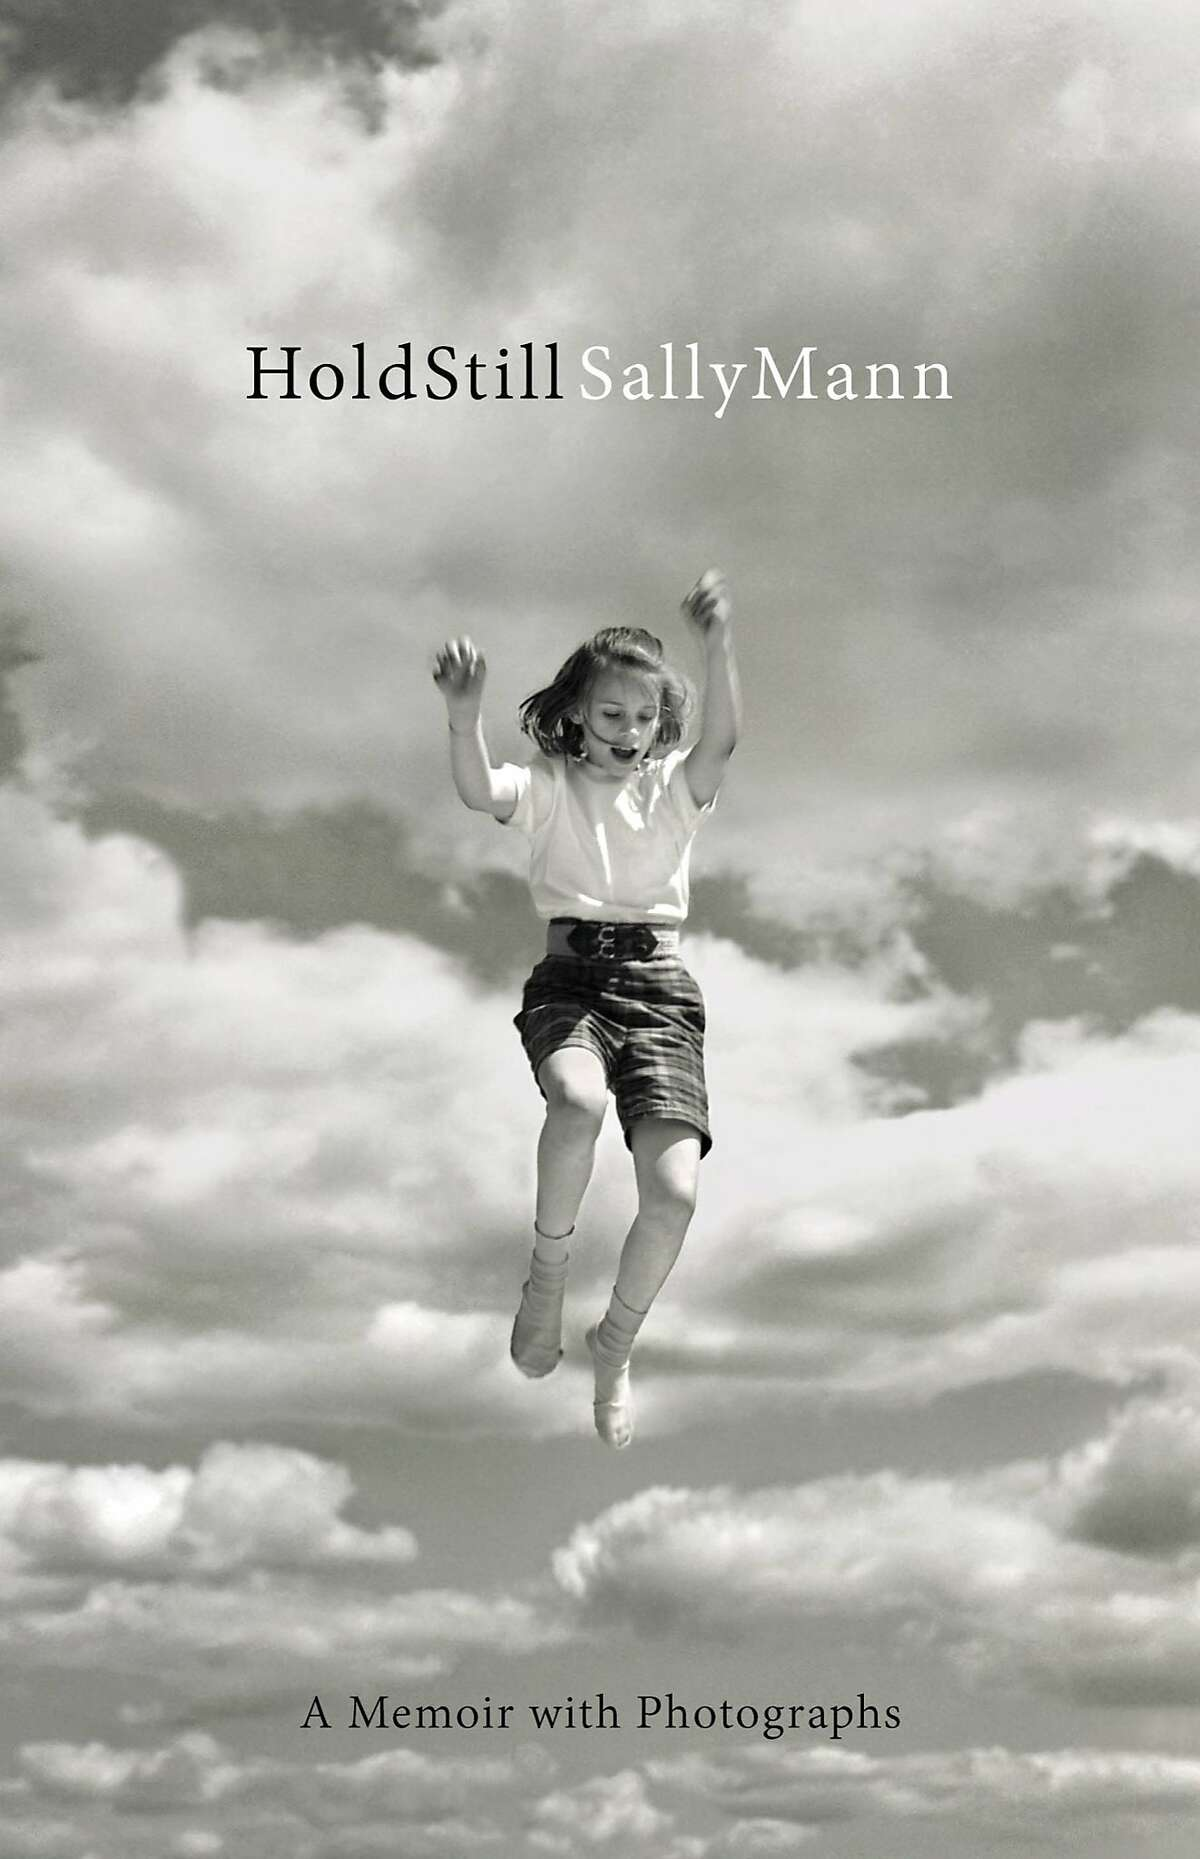 """This book cover image released by Little, Brown and Co. shows """"Hold Still,"""" by Sally Mann. (Little, Brown and Co. via AP) AP PROVIDES ACCESS TO THIS HANDOUT PHOTO TO BE USED SOLELY TO ILLUSTRATE NEWS REPORTING OR COMMENTARY ON THE FACTS OR EVENTS DEPICTED IN THIS IMAGE. THIS IMAGE MAY ONLY BE USED FOR 14 DAYS FROM TIME OF TRANSMISSION; NO ARCHIVING; NO LICENSING."""